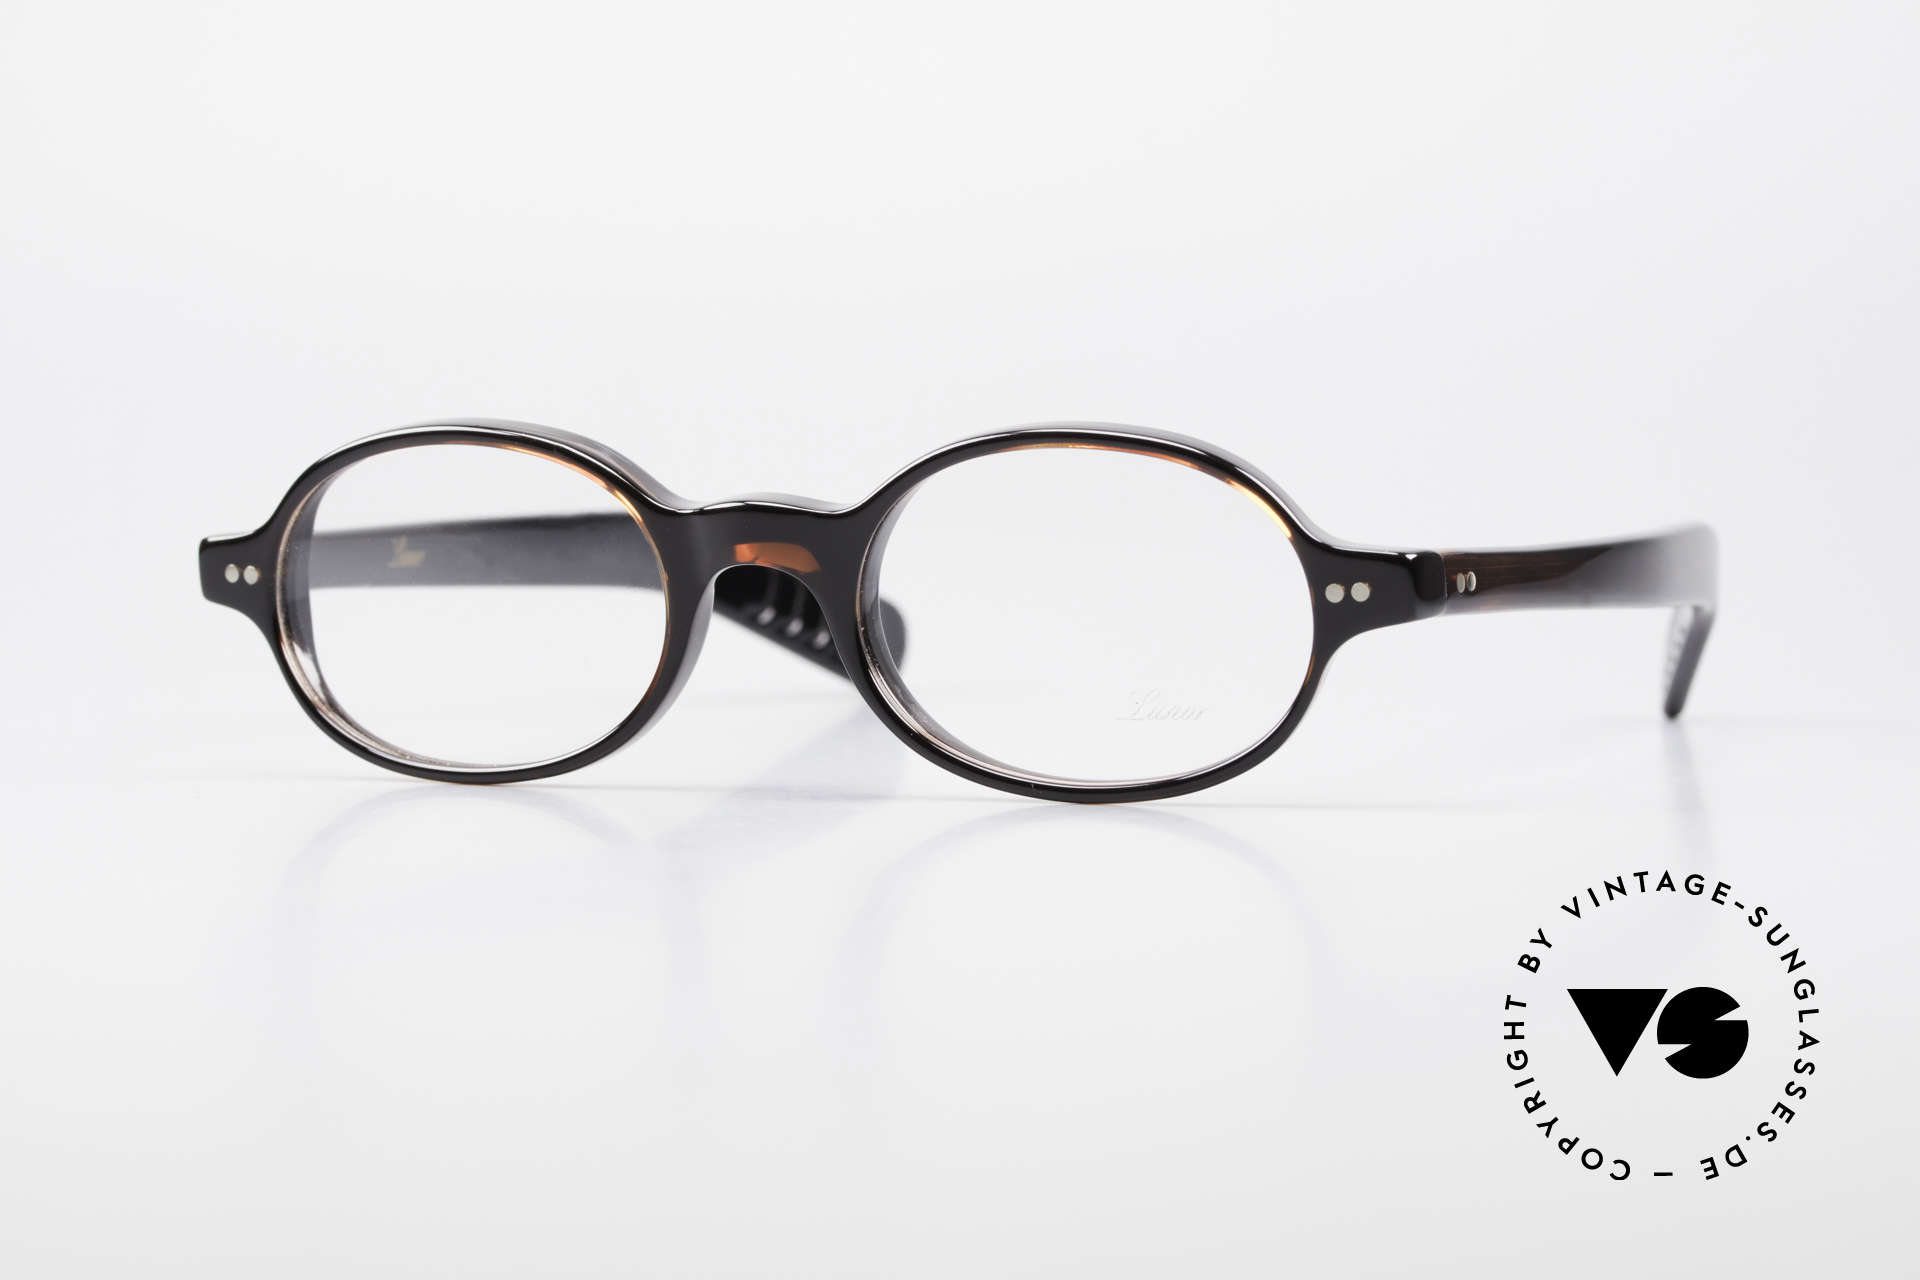 Lunor A57 Oval Lunor Acetate Glasses, mod. 57: oval Lunor glasses from the Acetate collection, Made for Men and Women